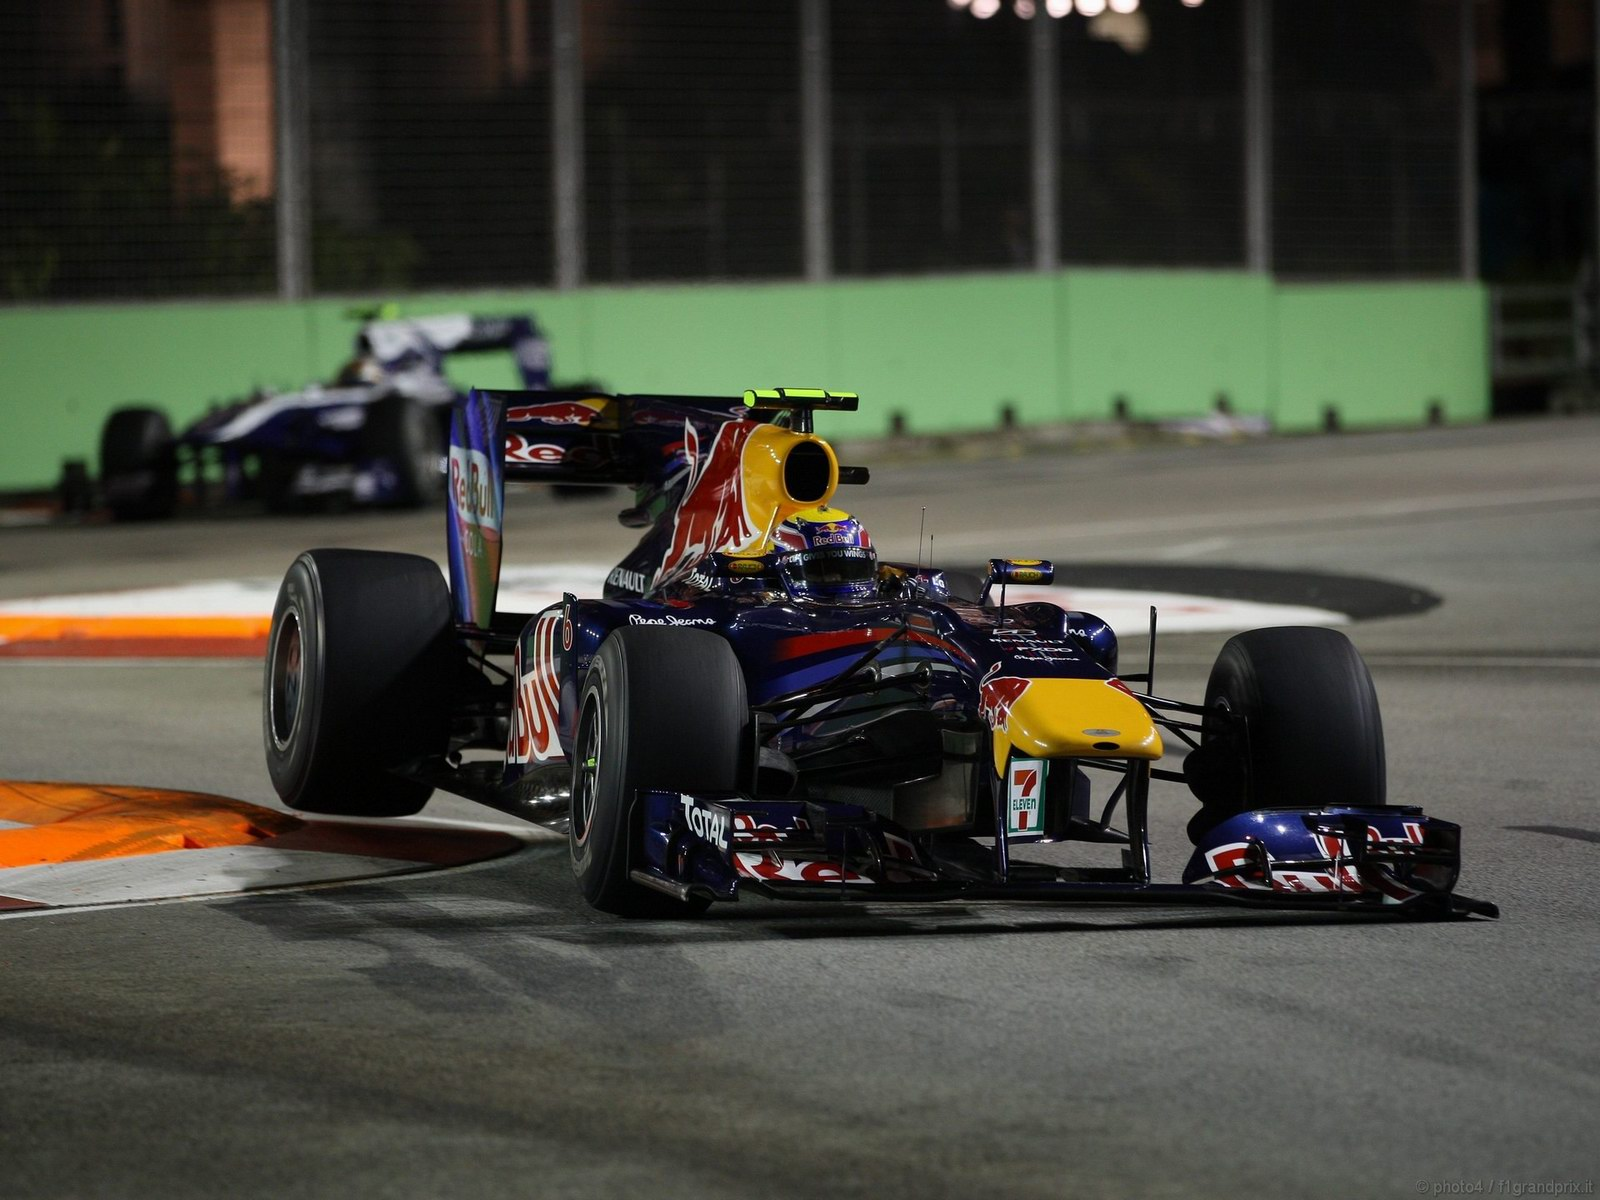 pojazdy - formula1 - gp_singapore_wallpapers_000145